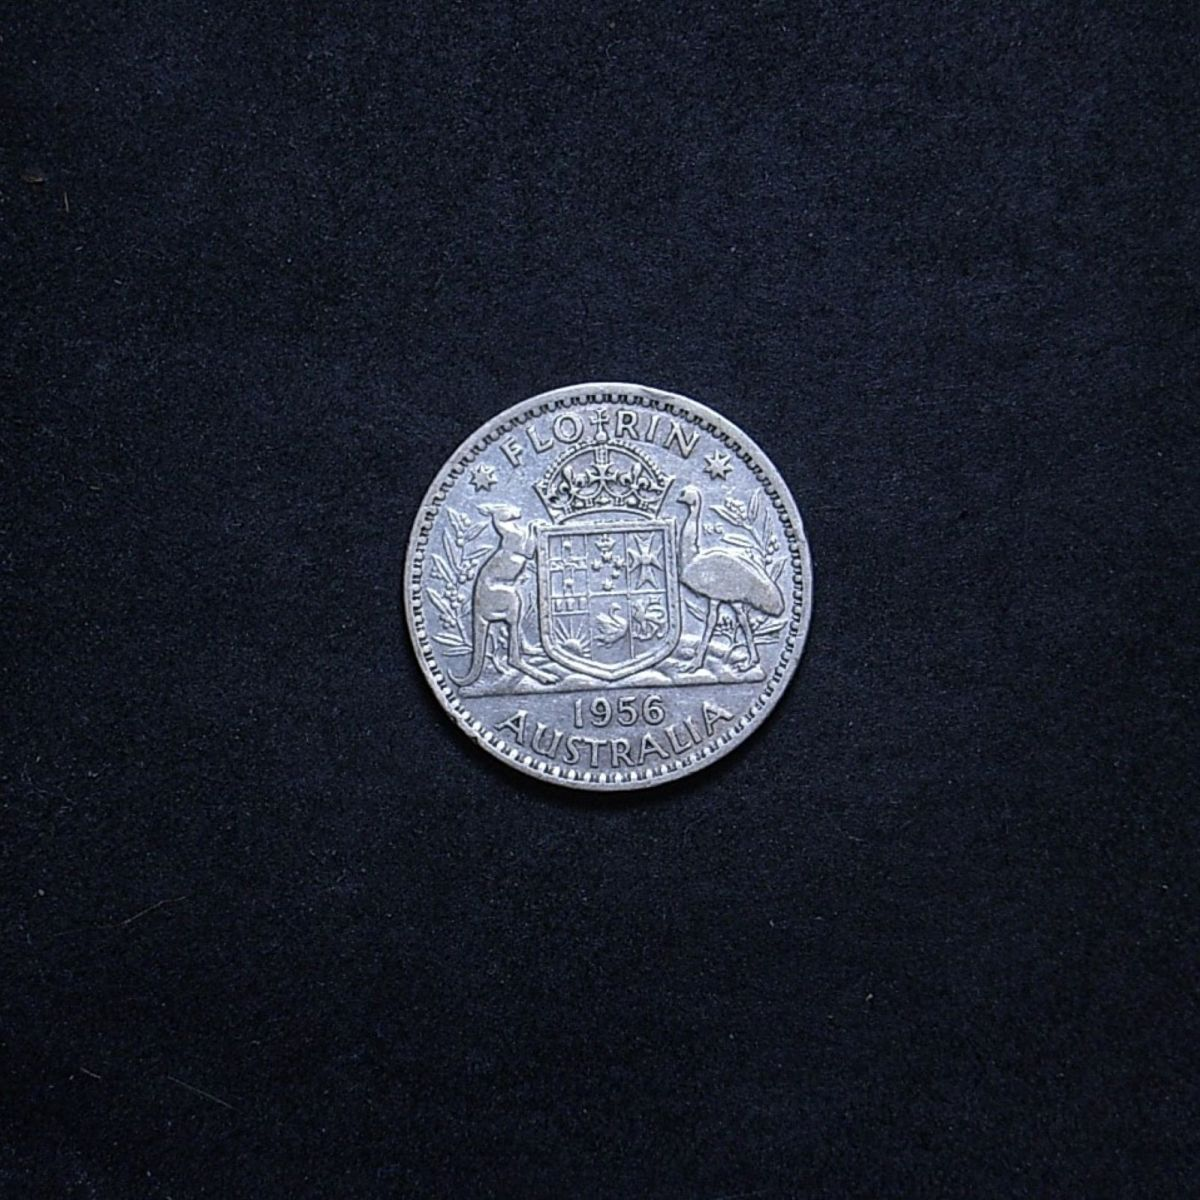 Aus Florin 1956 reverse showing overall appearance